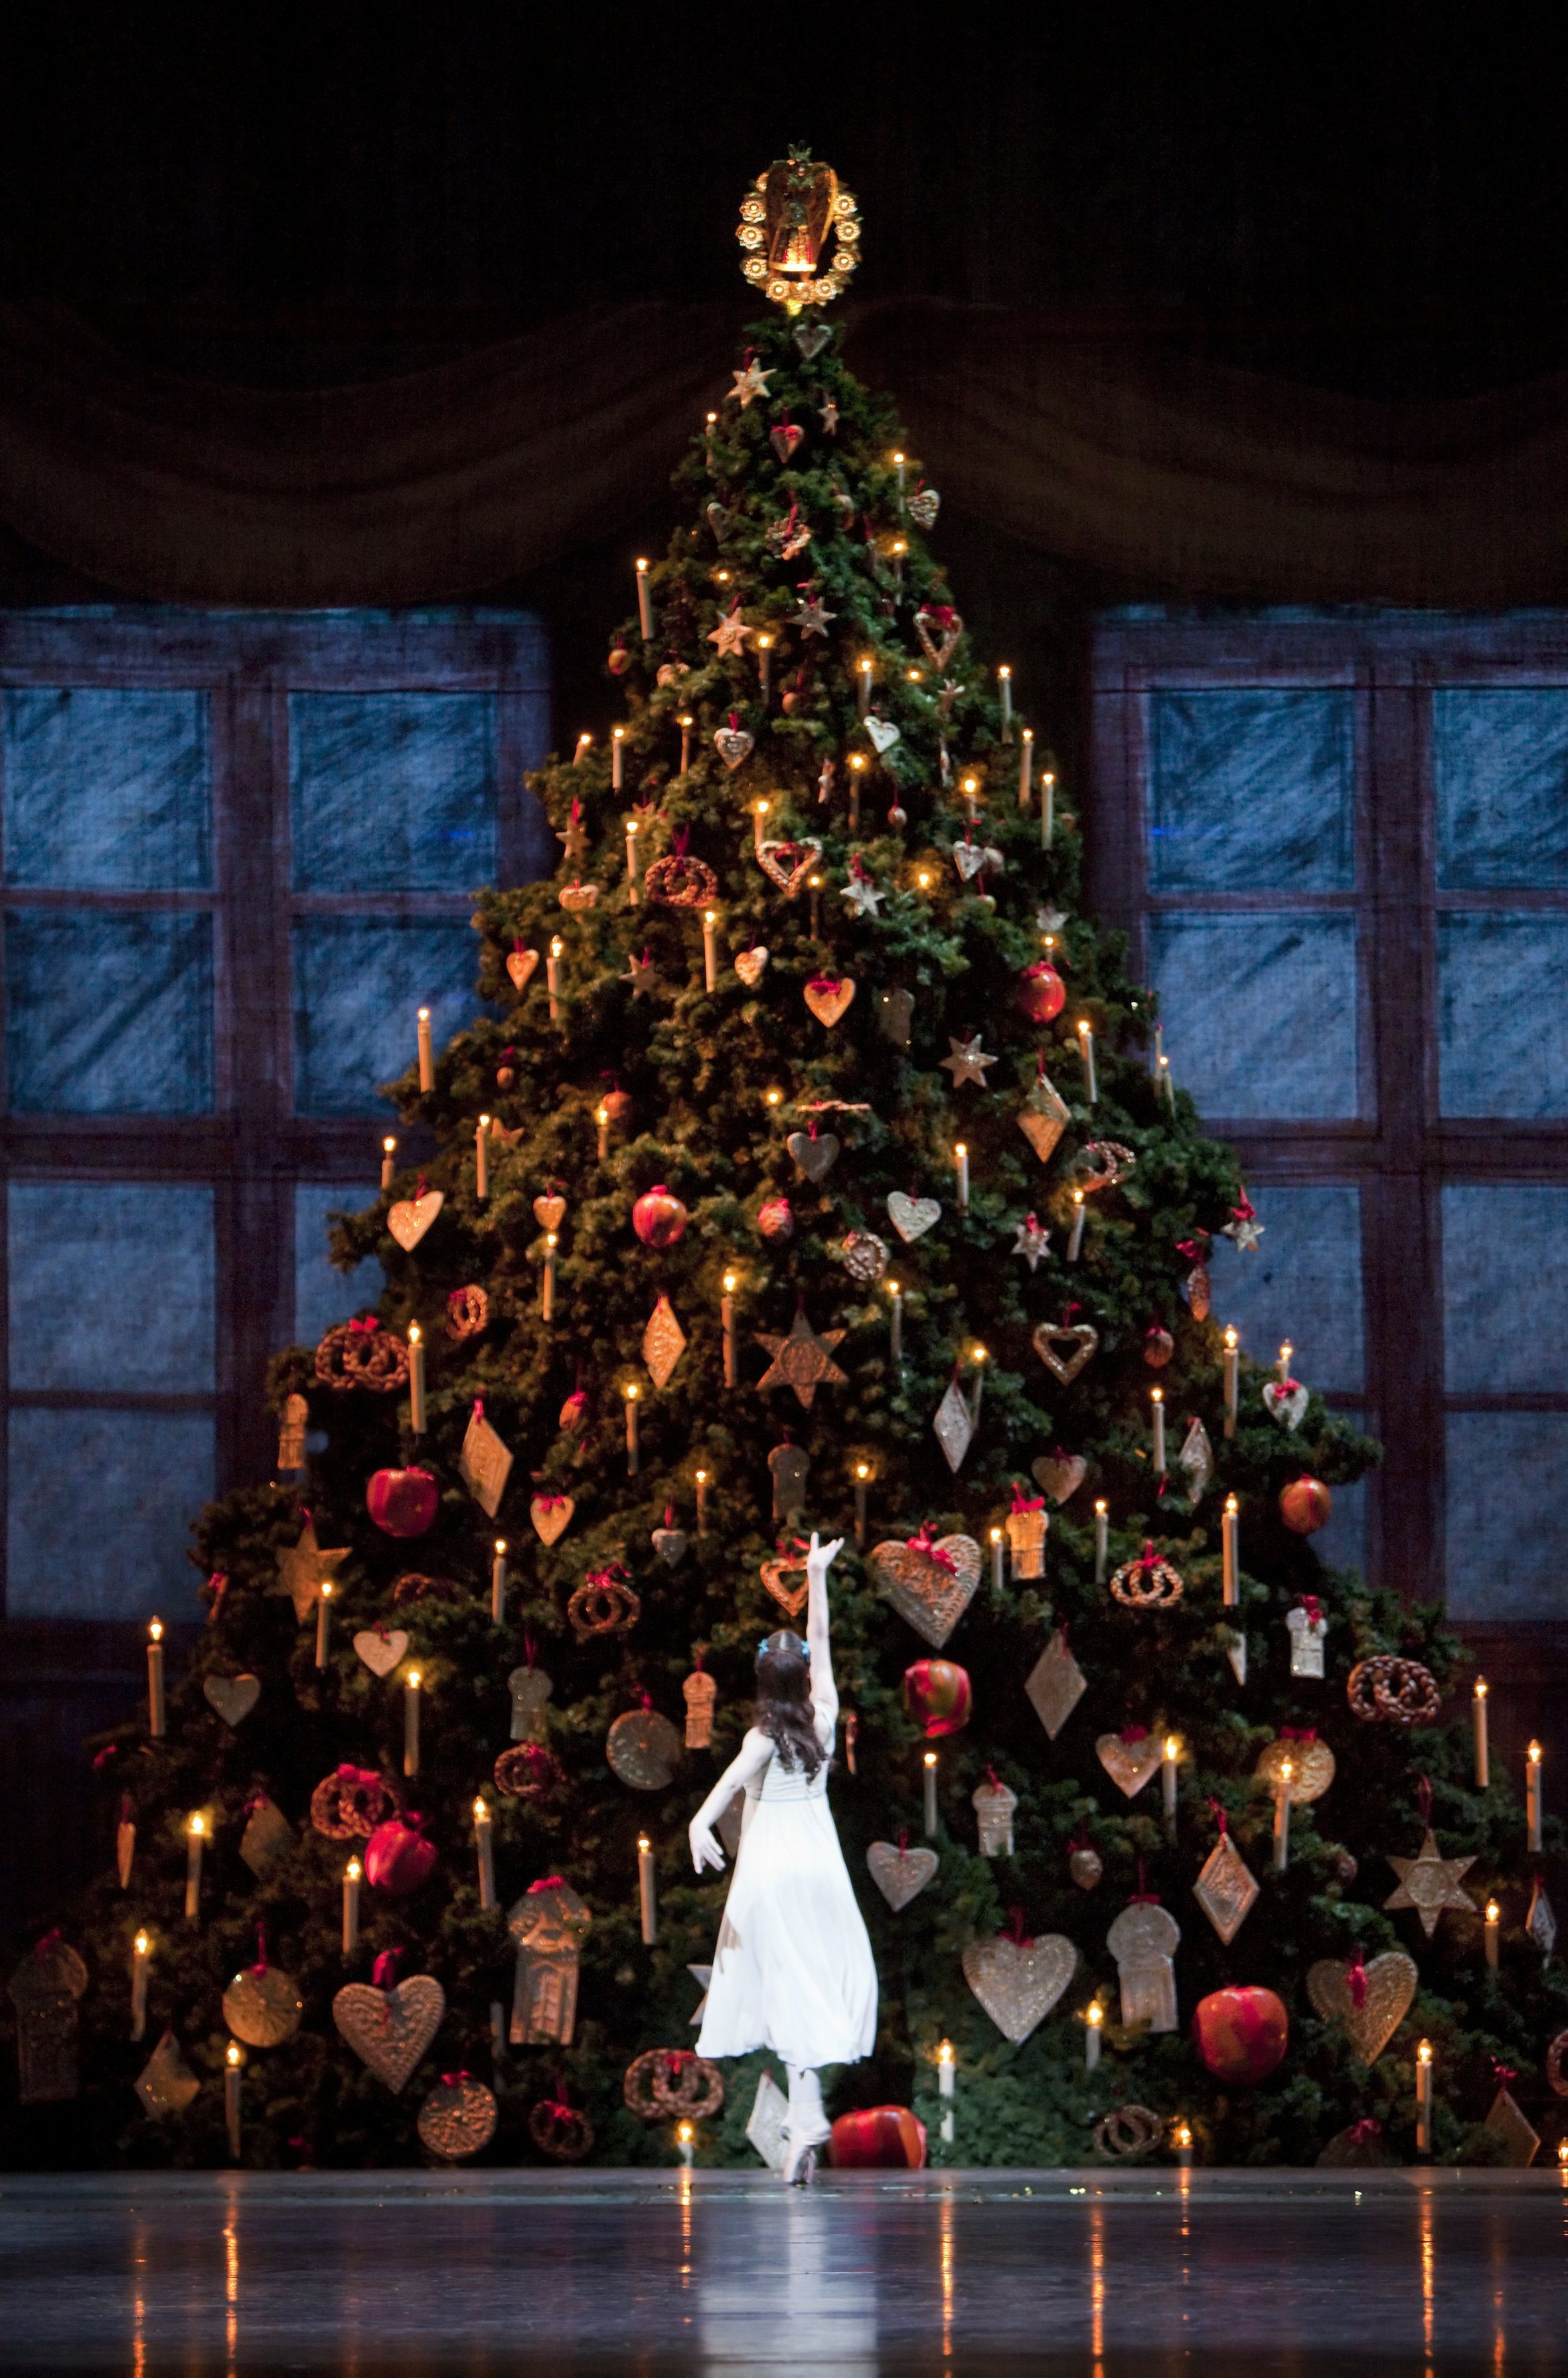 The Christmas Tree From The Royal Ballet S The Nutcracker Photo By Johan Persson Nutcracker Christmas Nutcracker Nutcracker Ballet